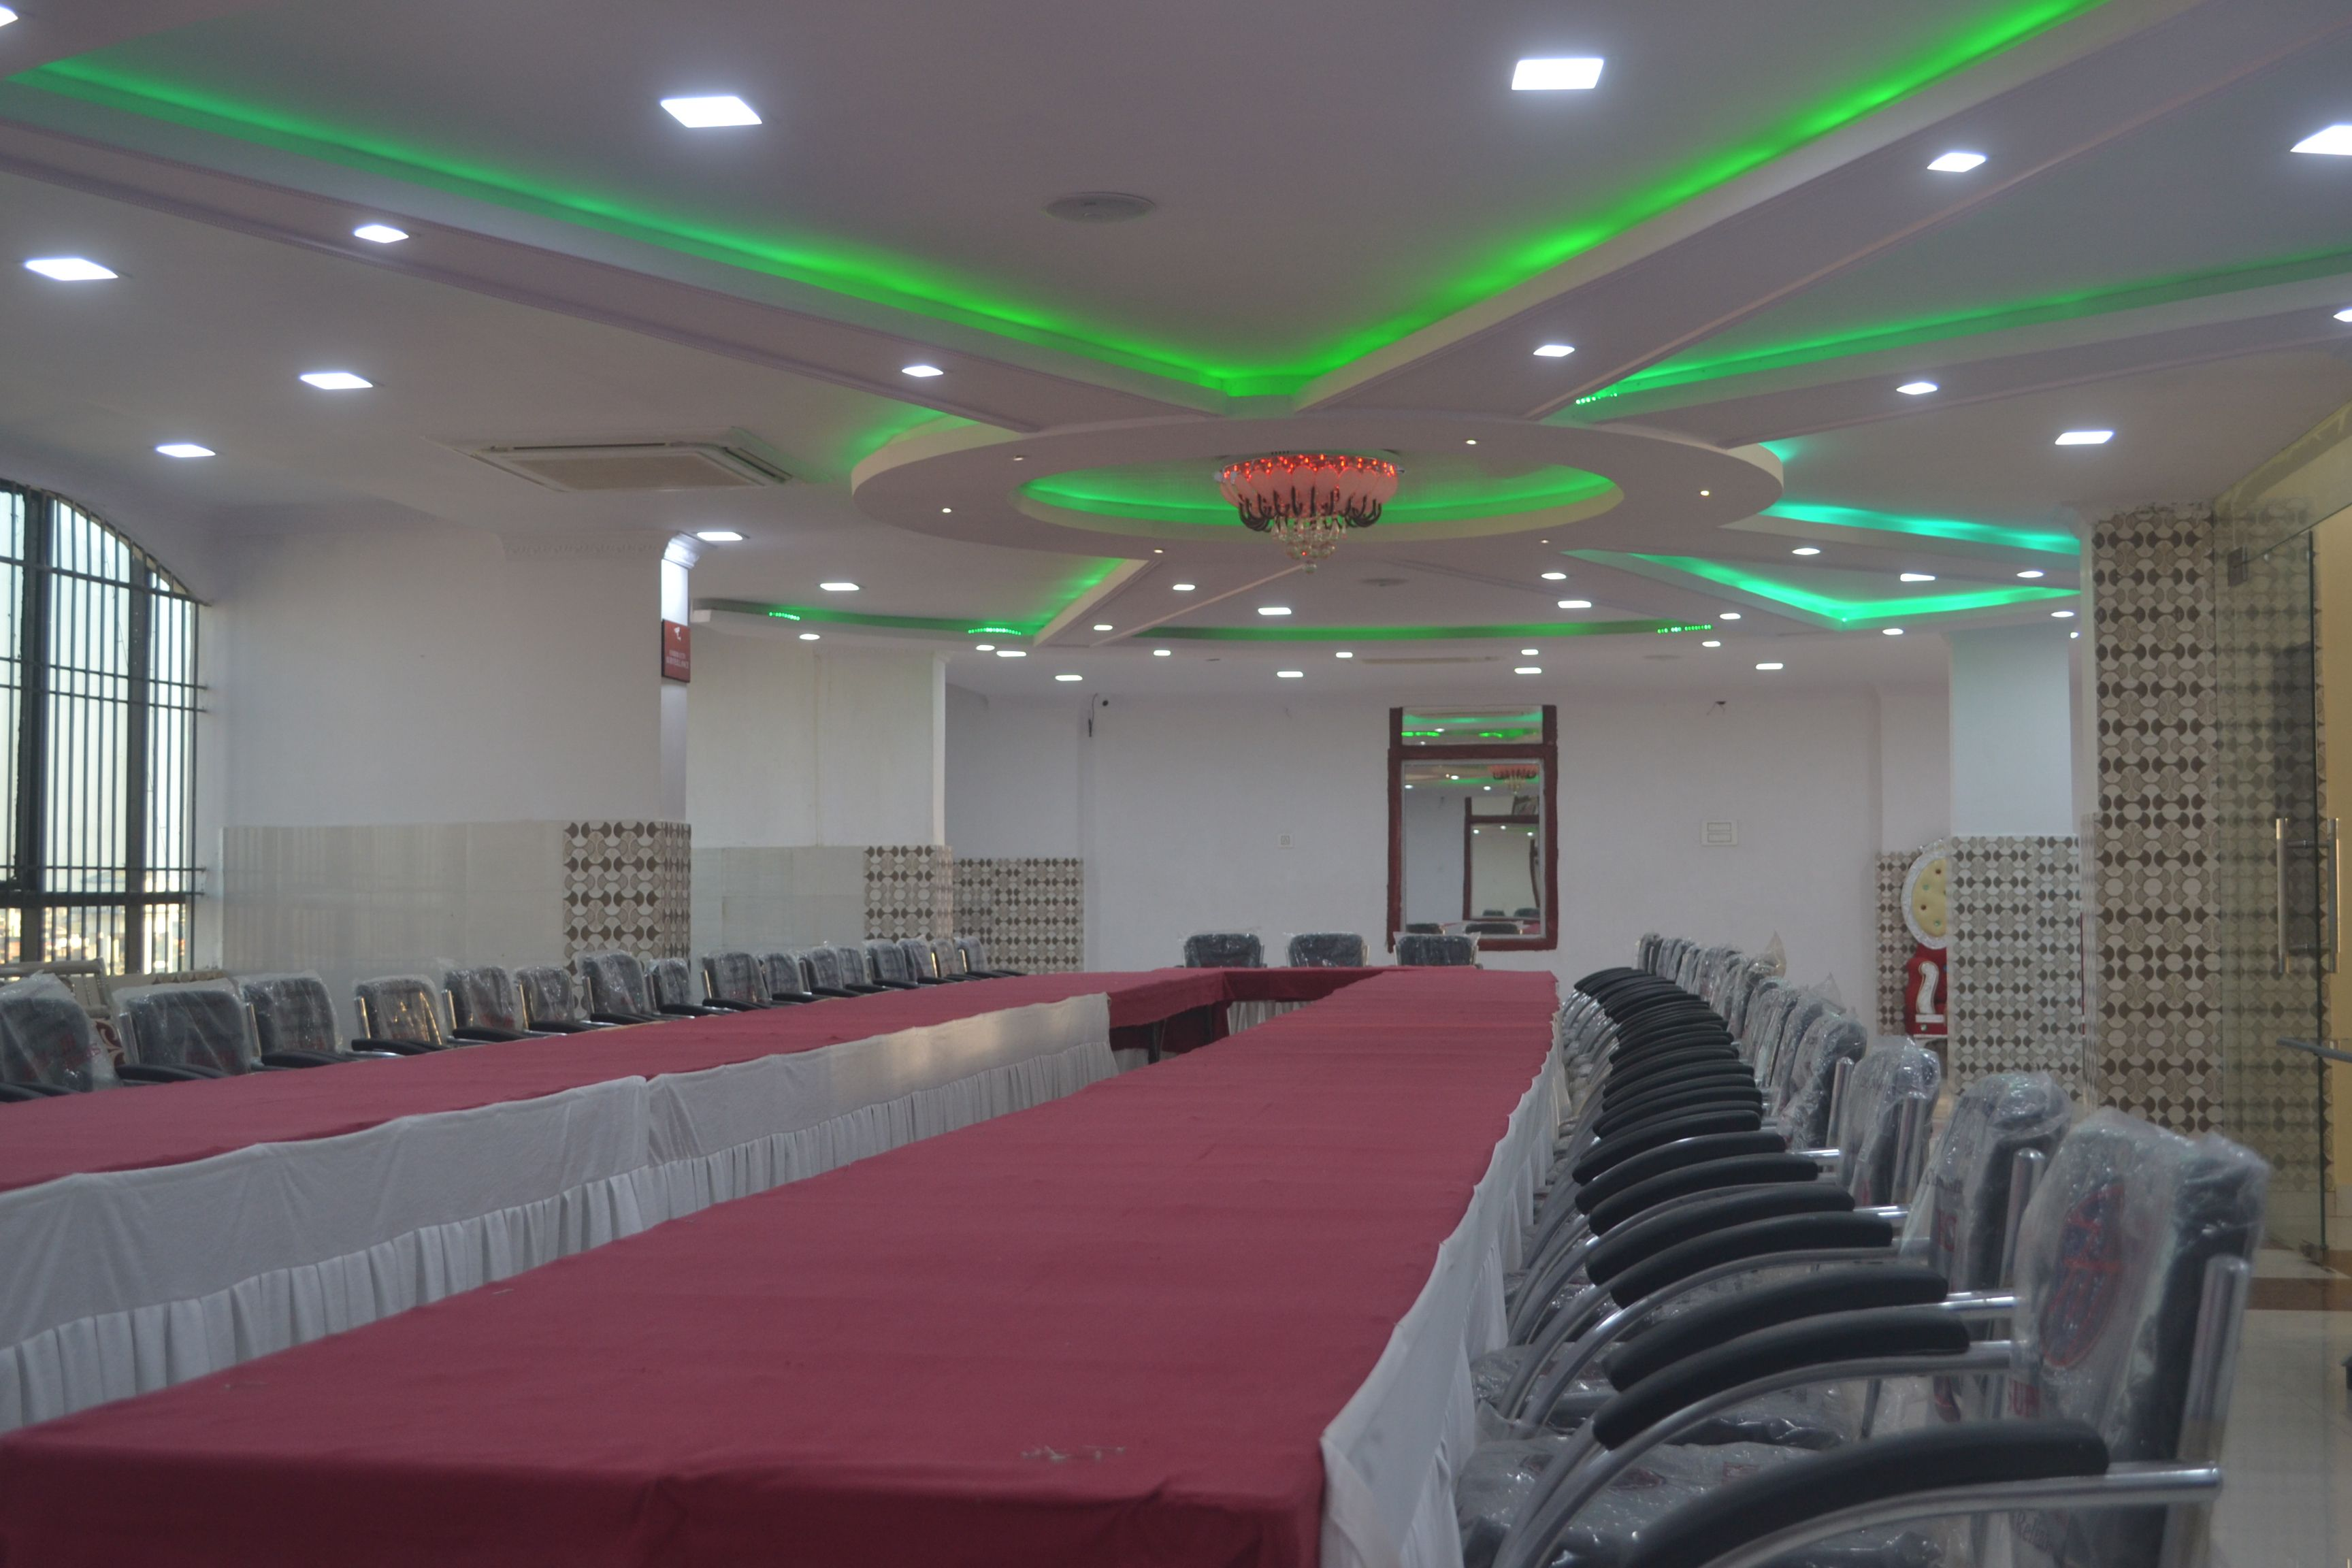 Ss Exotica Hotels Banquet And Family Restaurants Now You Can Book Best Banquets In Patna Directly With To Make Your Next Business Trip